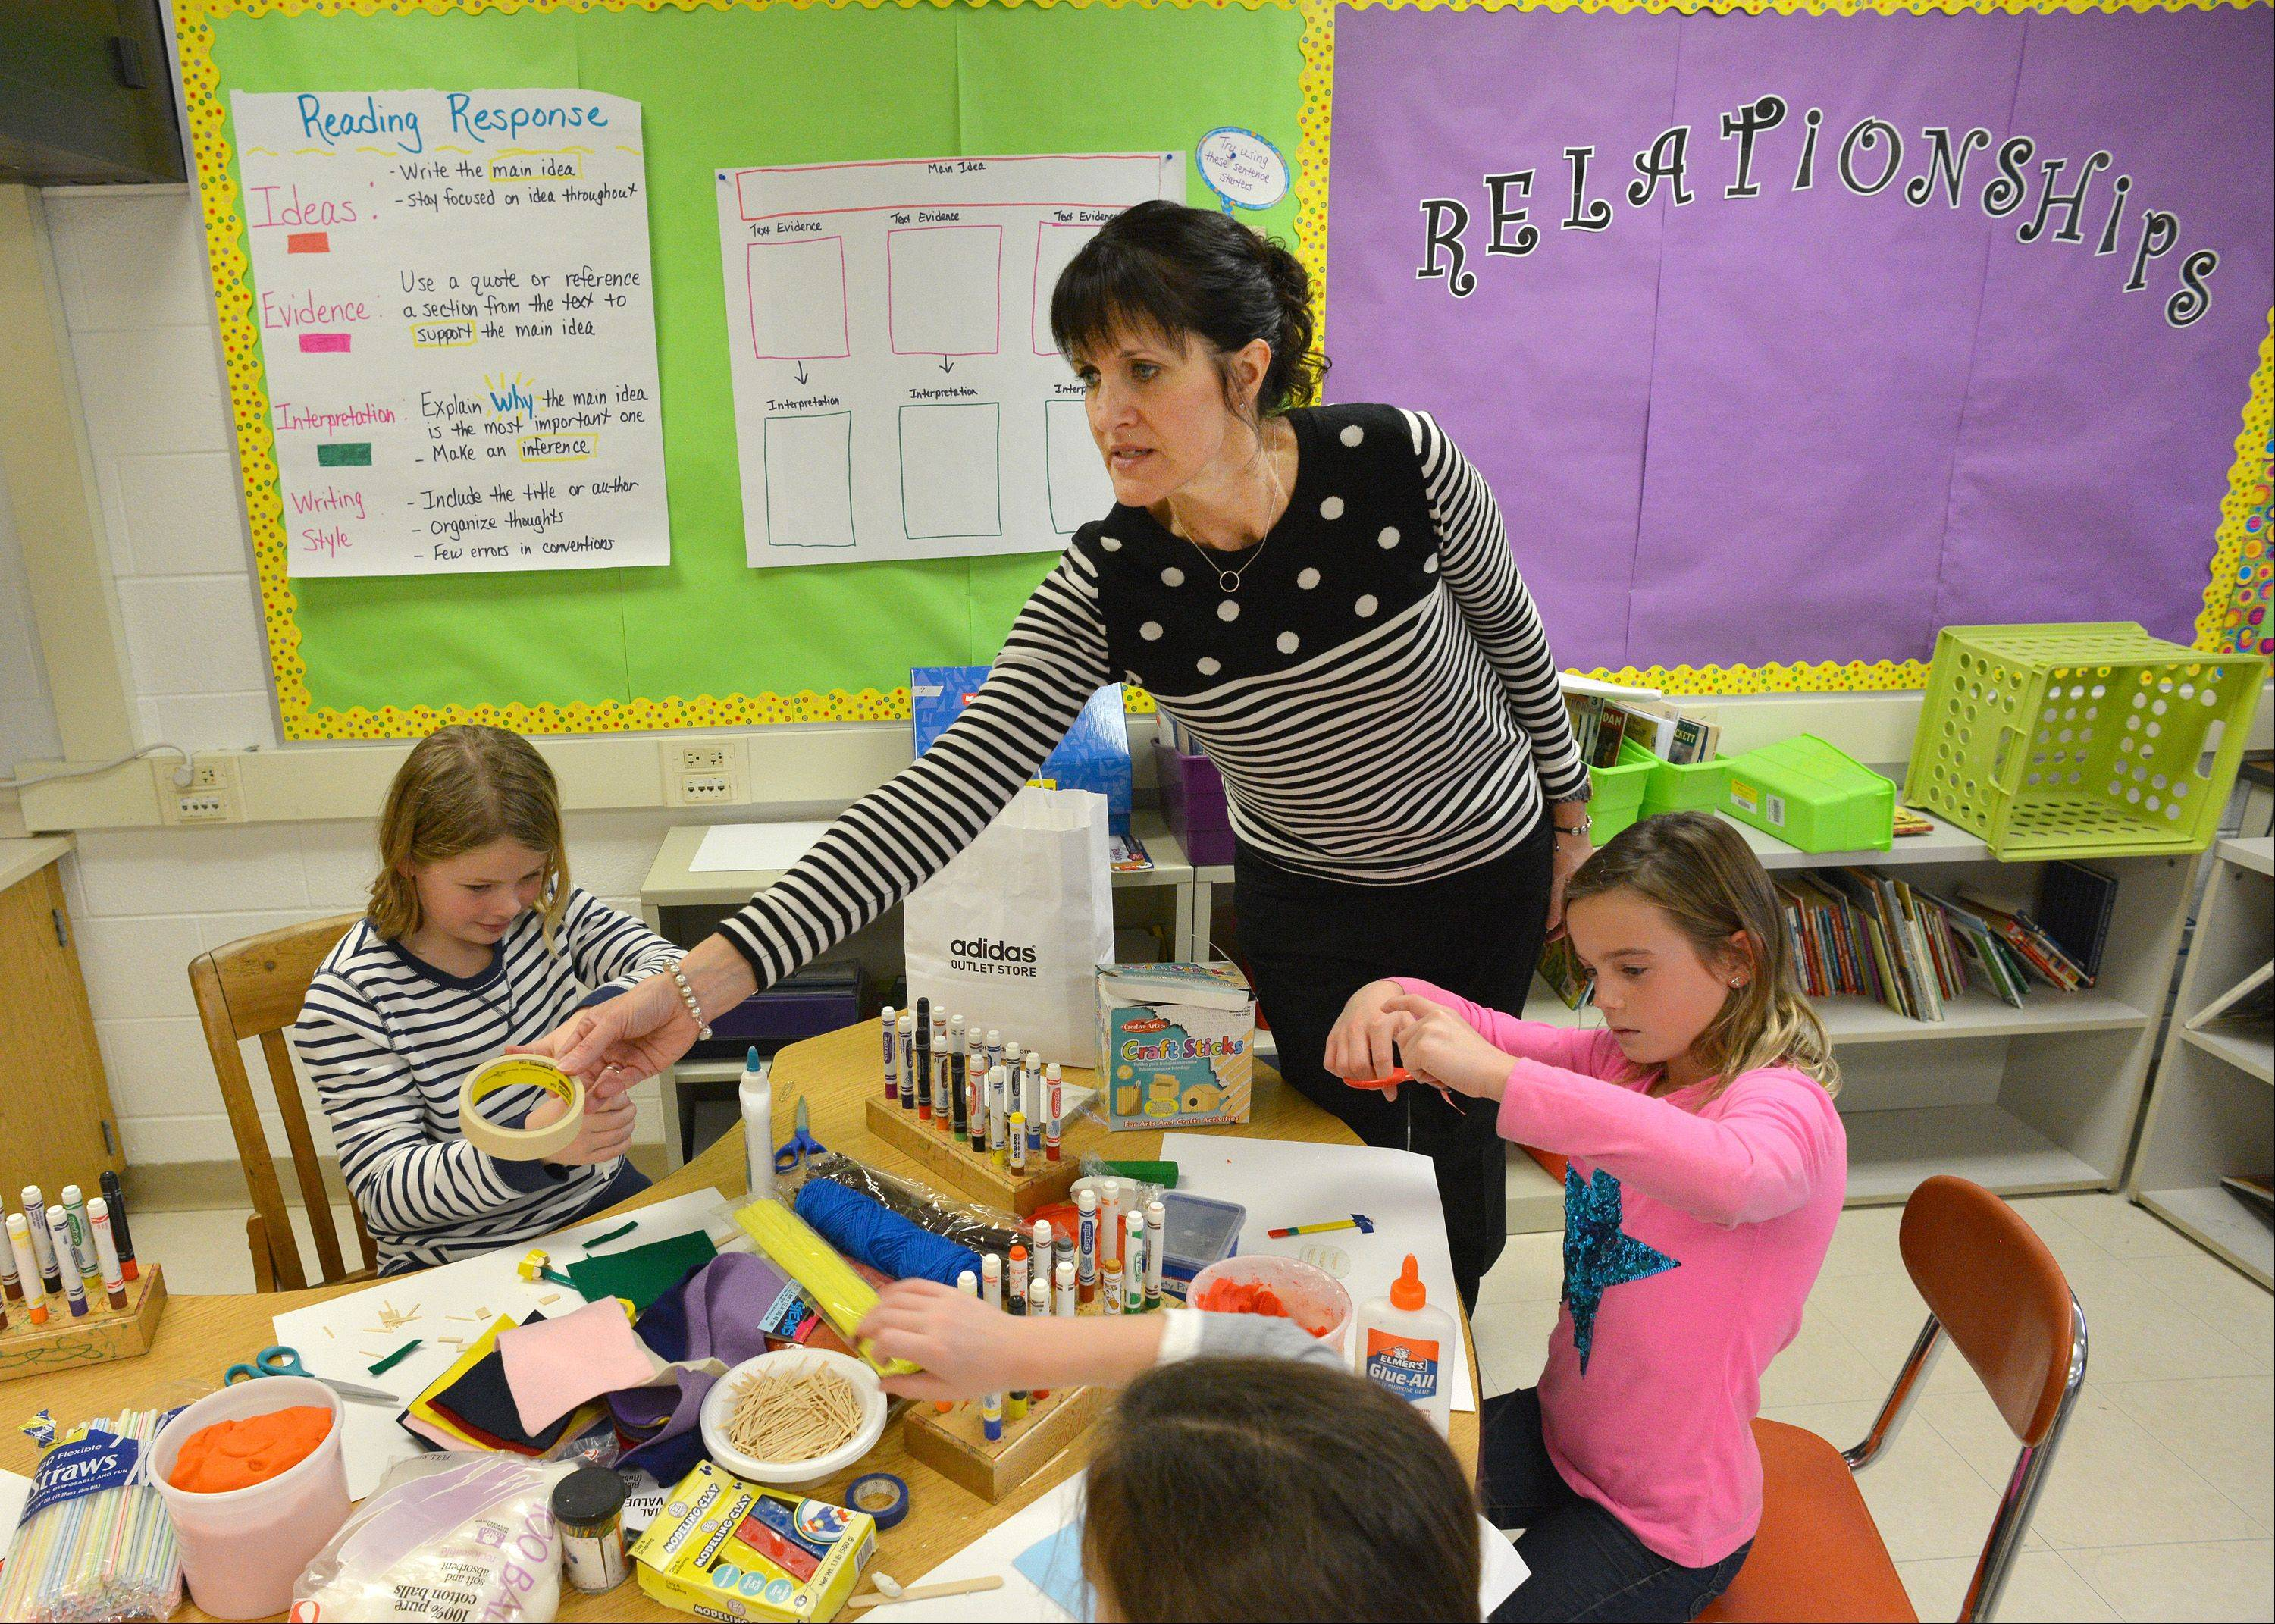 Third-grade literacy teacher Michelle Spratt helps students Kennedey Brandt, left, and Sophia Brown learn about relationships at Benjamin Franklin Elementary School in Glen Ellyn. The school recently was honored for its innovative approaches to learning.